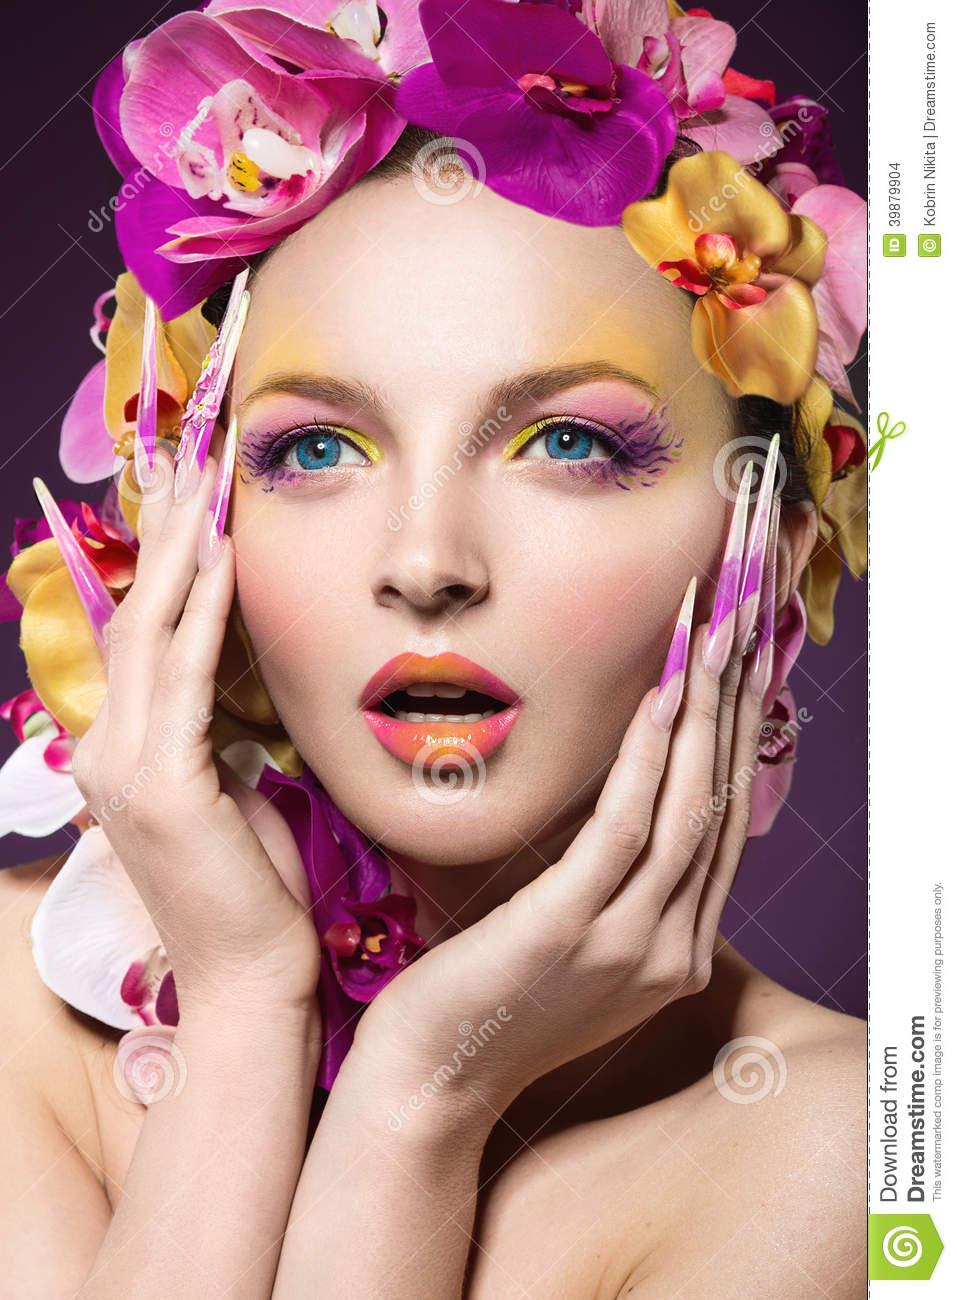 eautiful woman with hair made of flowers and long nails